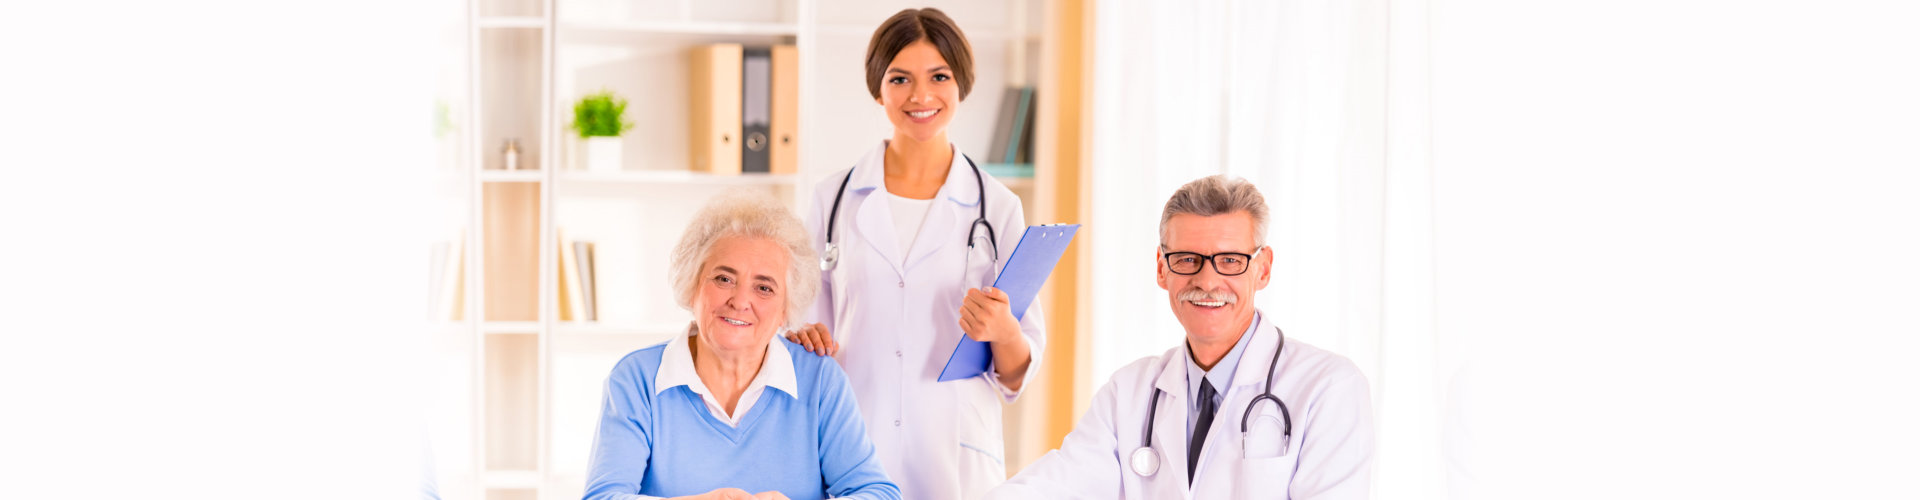 medical professionals with senior patient smiling